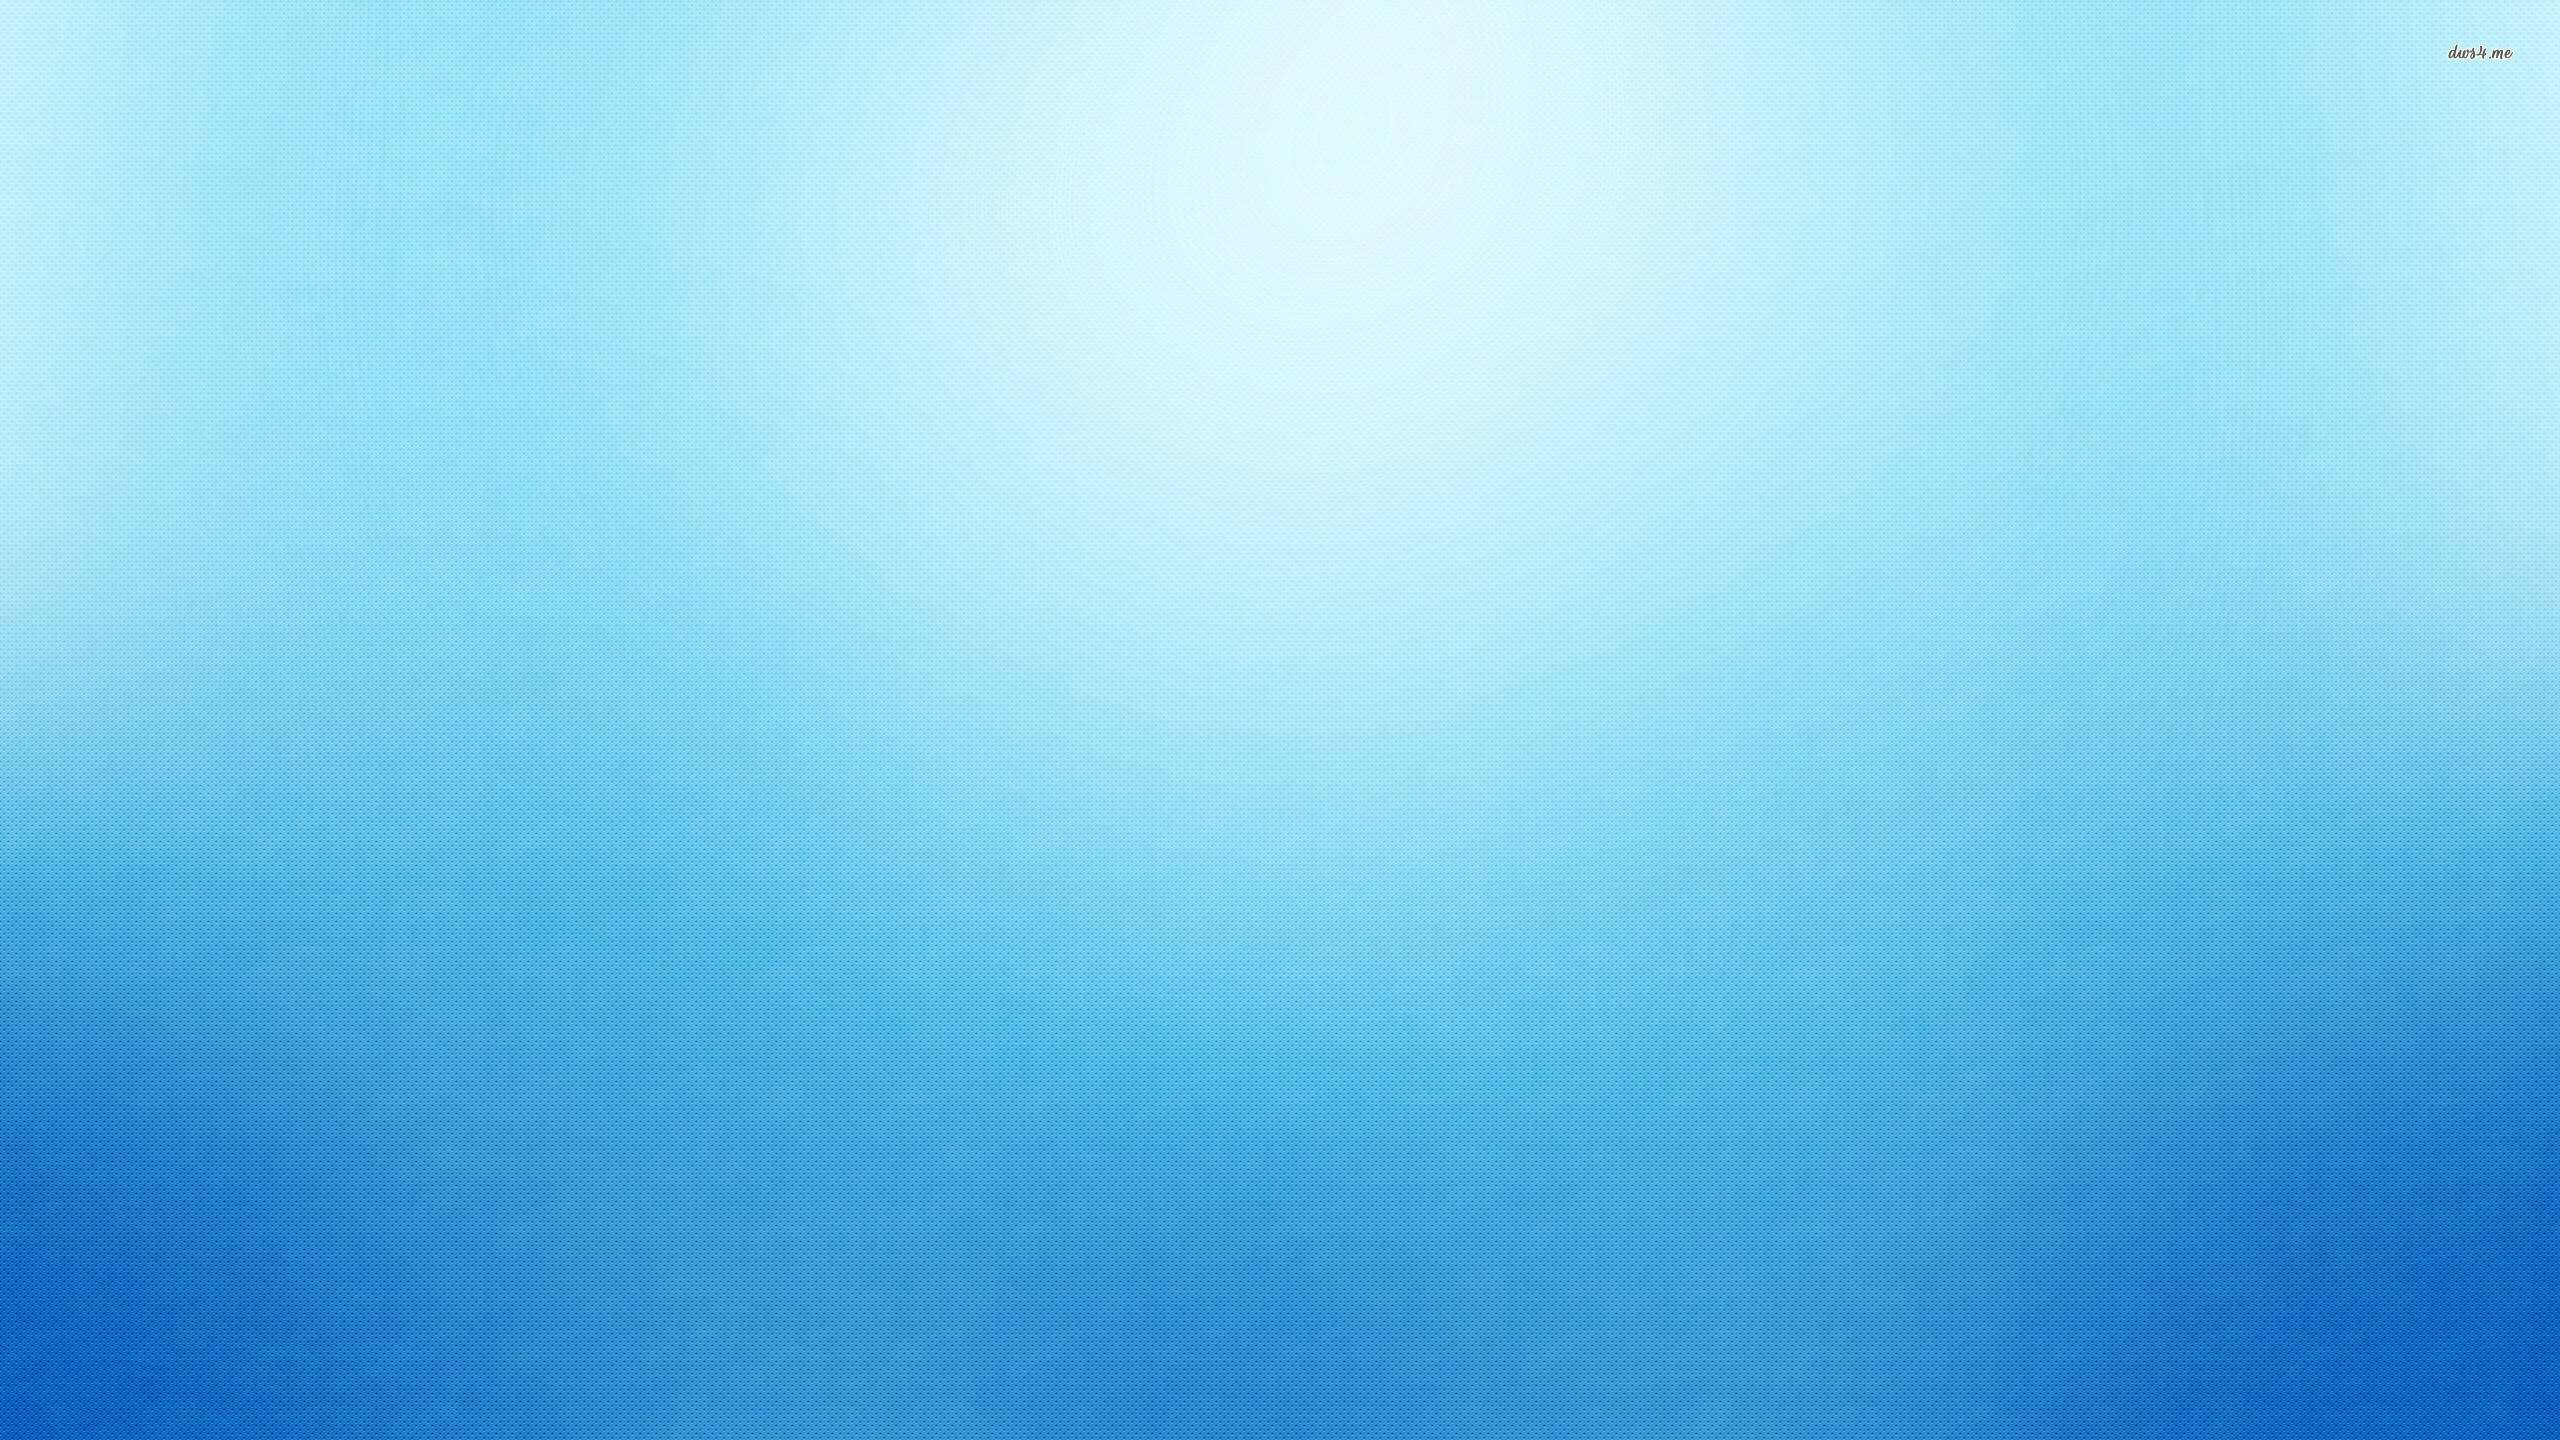 Light Blue Wallpapers 2560x1440